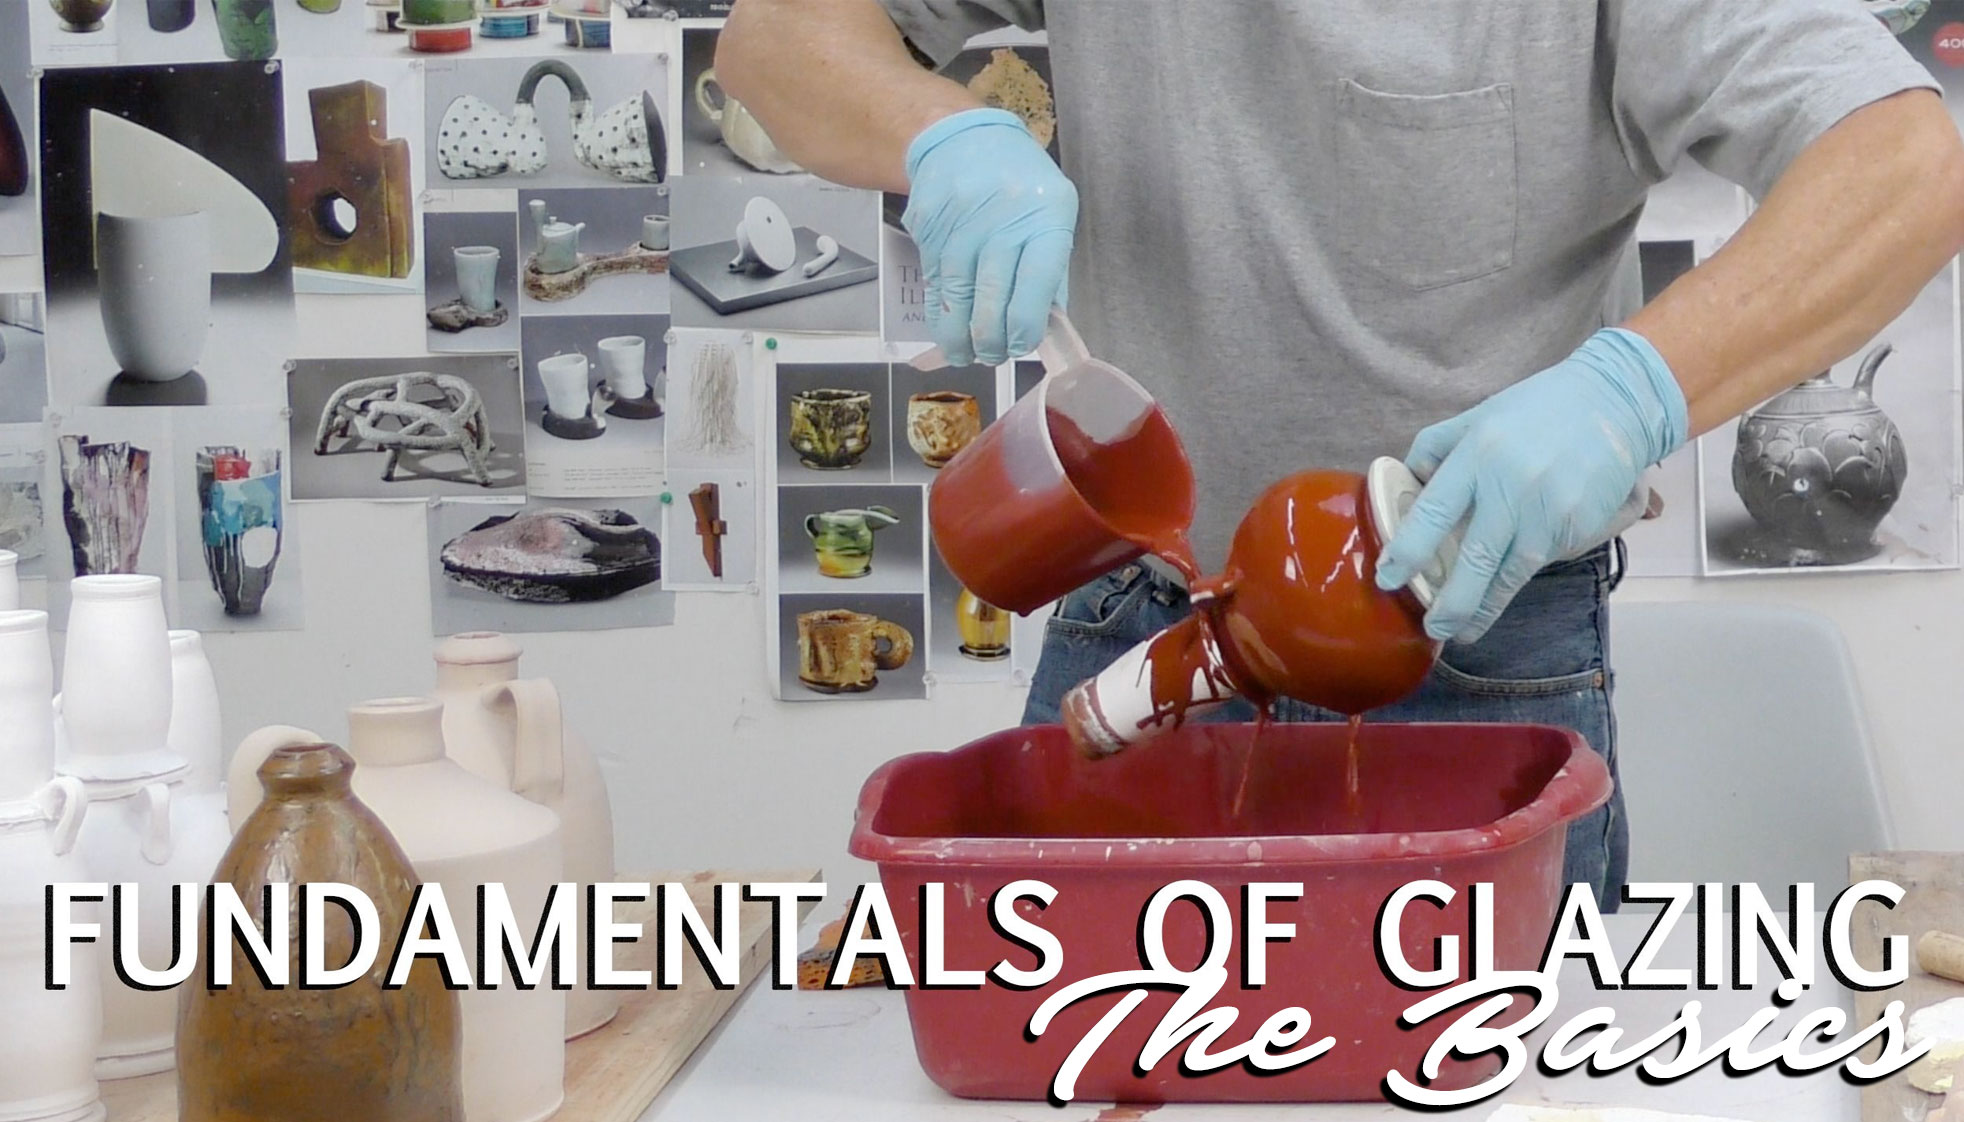 Fundamentals of Glazing